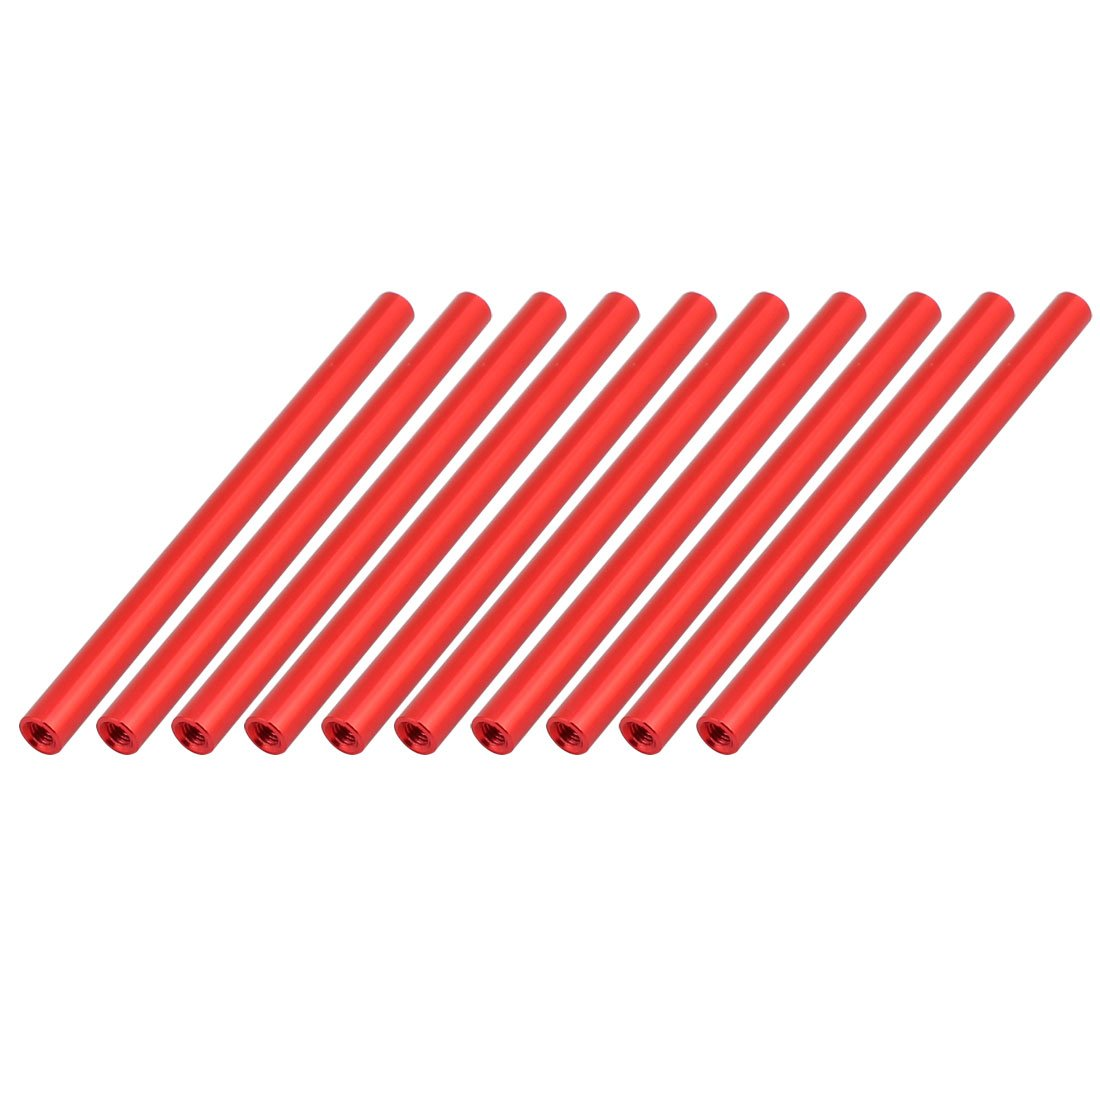 uxcell 10 Pcs M3 x 75mm Round Aluminum Column Alloy Standoff Spacer Stud Fastener for Quadcopter Red